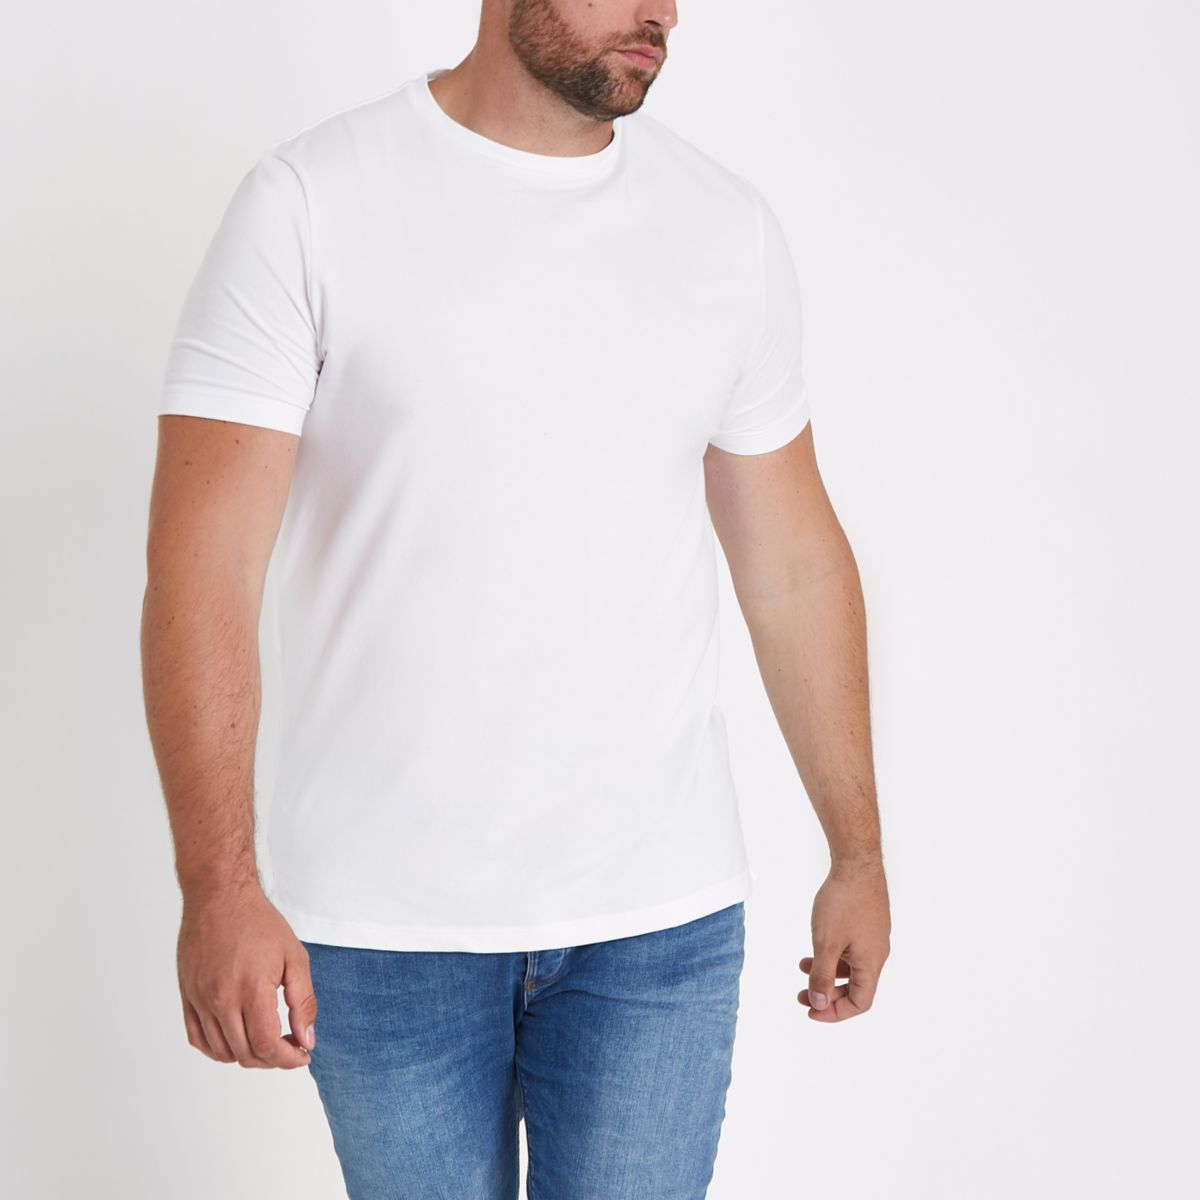 Cover your body with amazing Large Sized t-shirts from Zazzle. Search for your new favorite shirt from thousands of great designs! On The Edge Fitness Long Sleeve Size Large T-Shirt. $ 15% Off with code ZDAILYDEALS5. Women's Large Size T-Shirt. $ 15% Off with code ZDAILYDEALS5. adult size large im his design T-Shirt. $